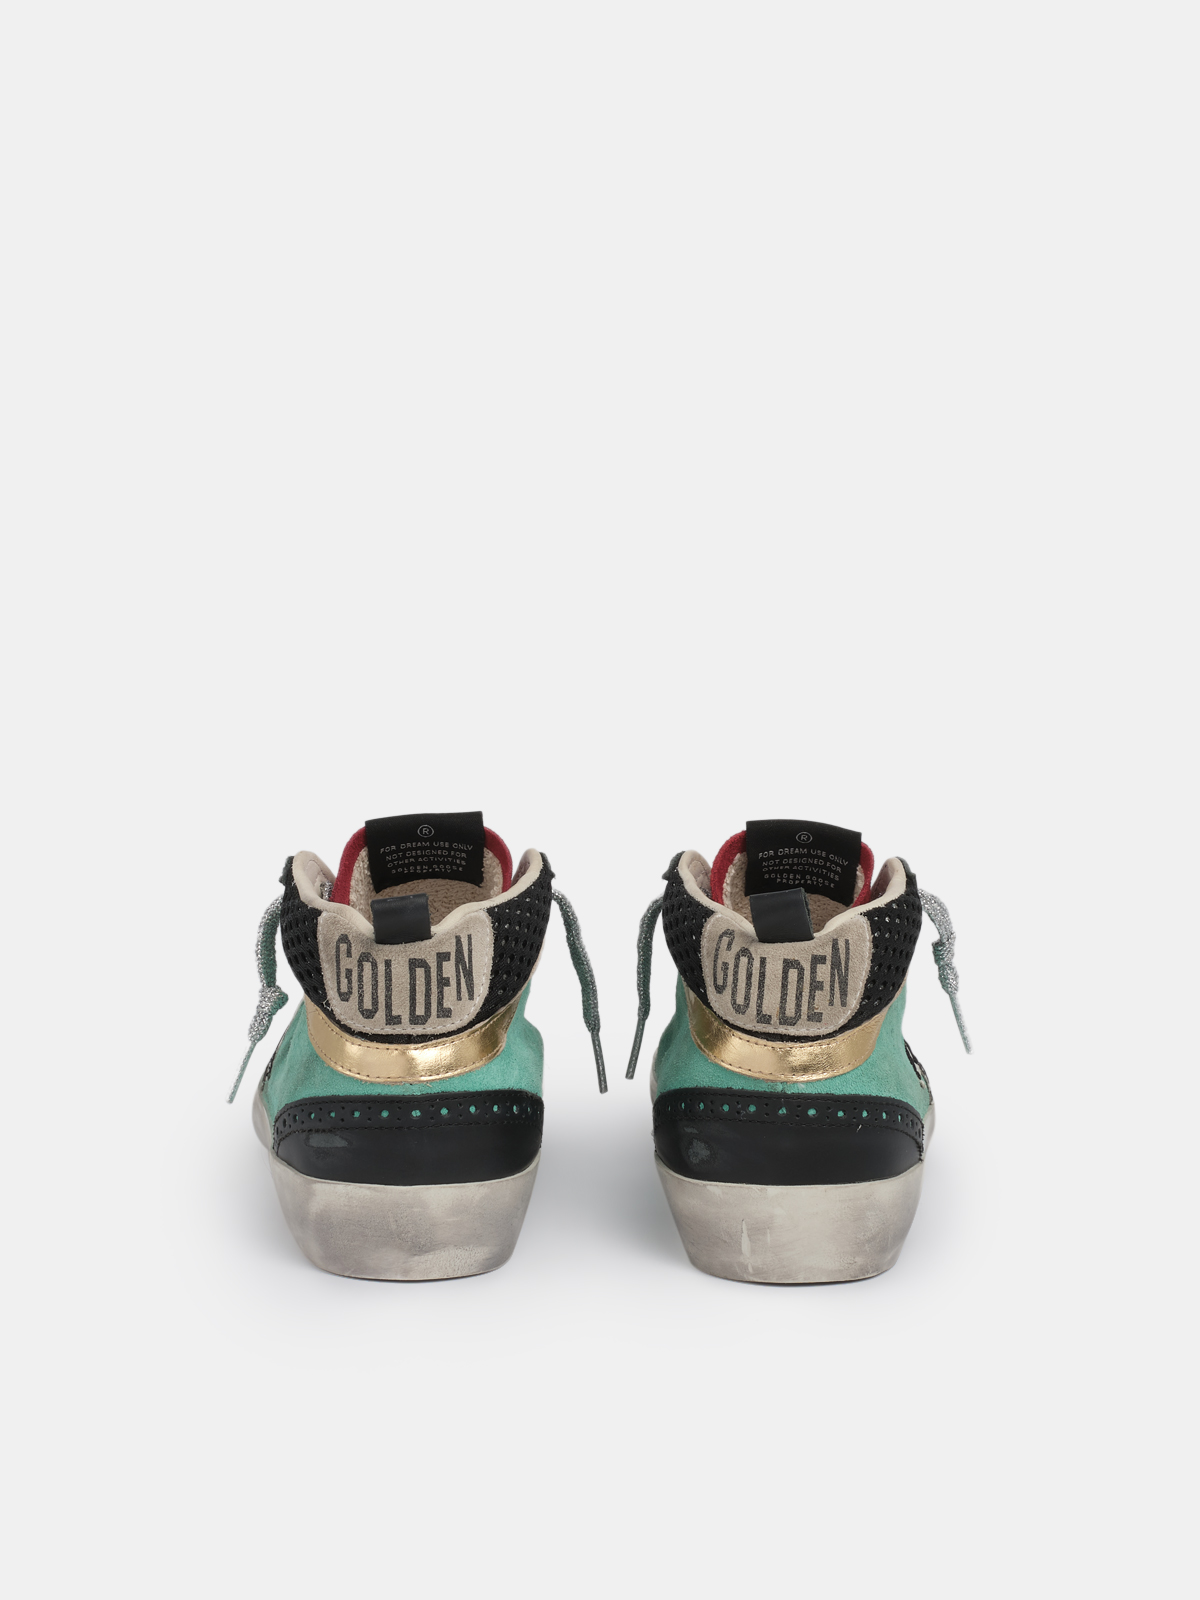 Golden Goose - Mid Star sneakers with aqua green suede upper and zebra-print leather star in